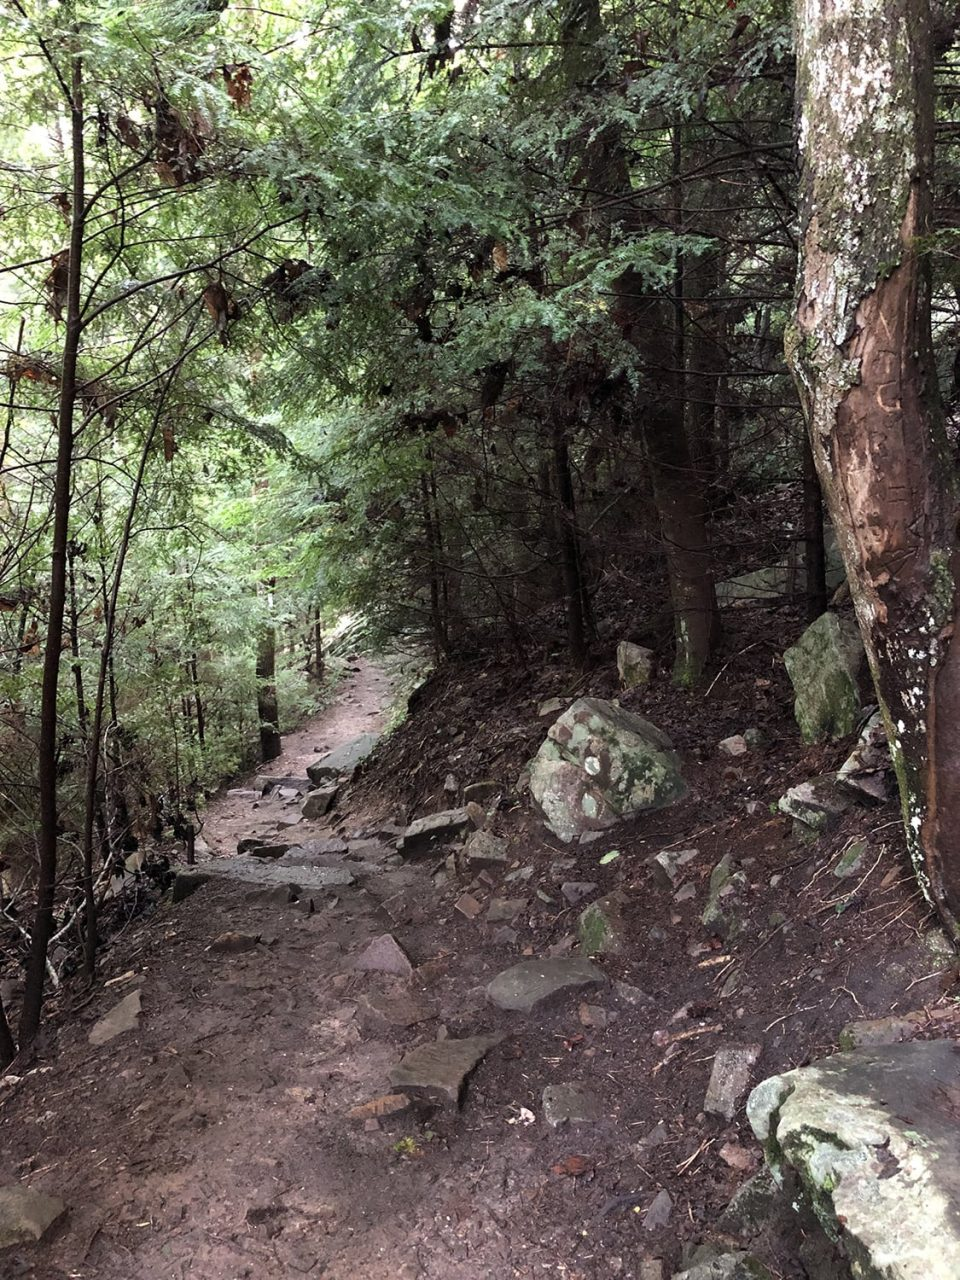 A look at the trail descending to the waterfall. It's only a quarter-mile hike.